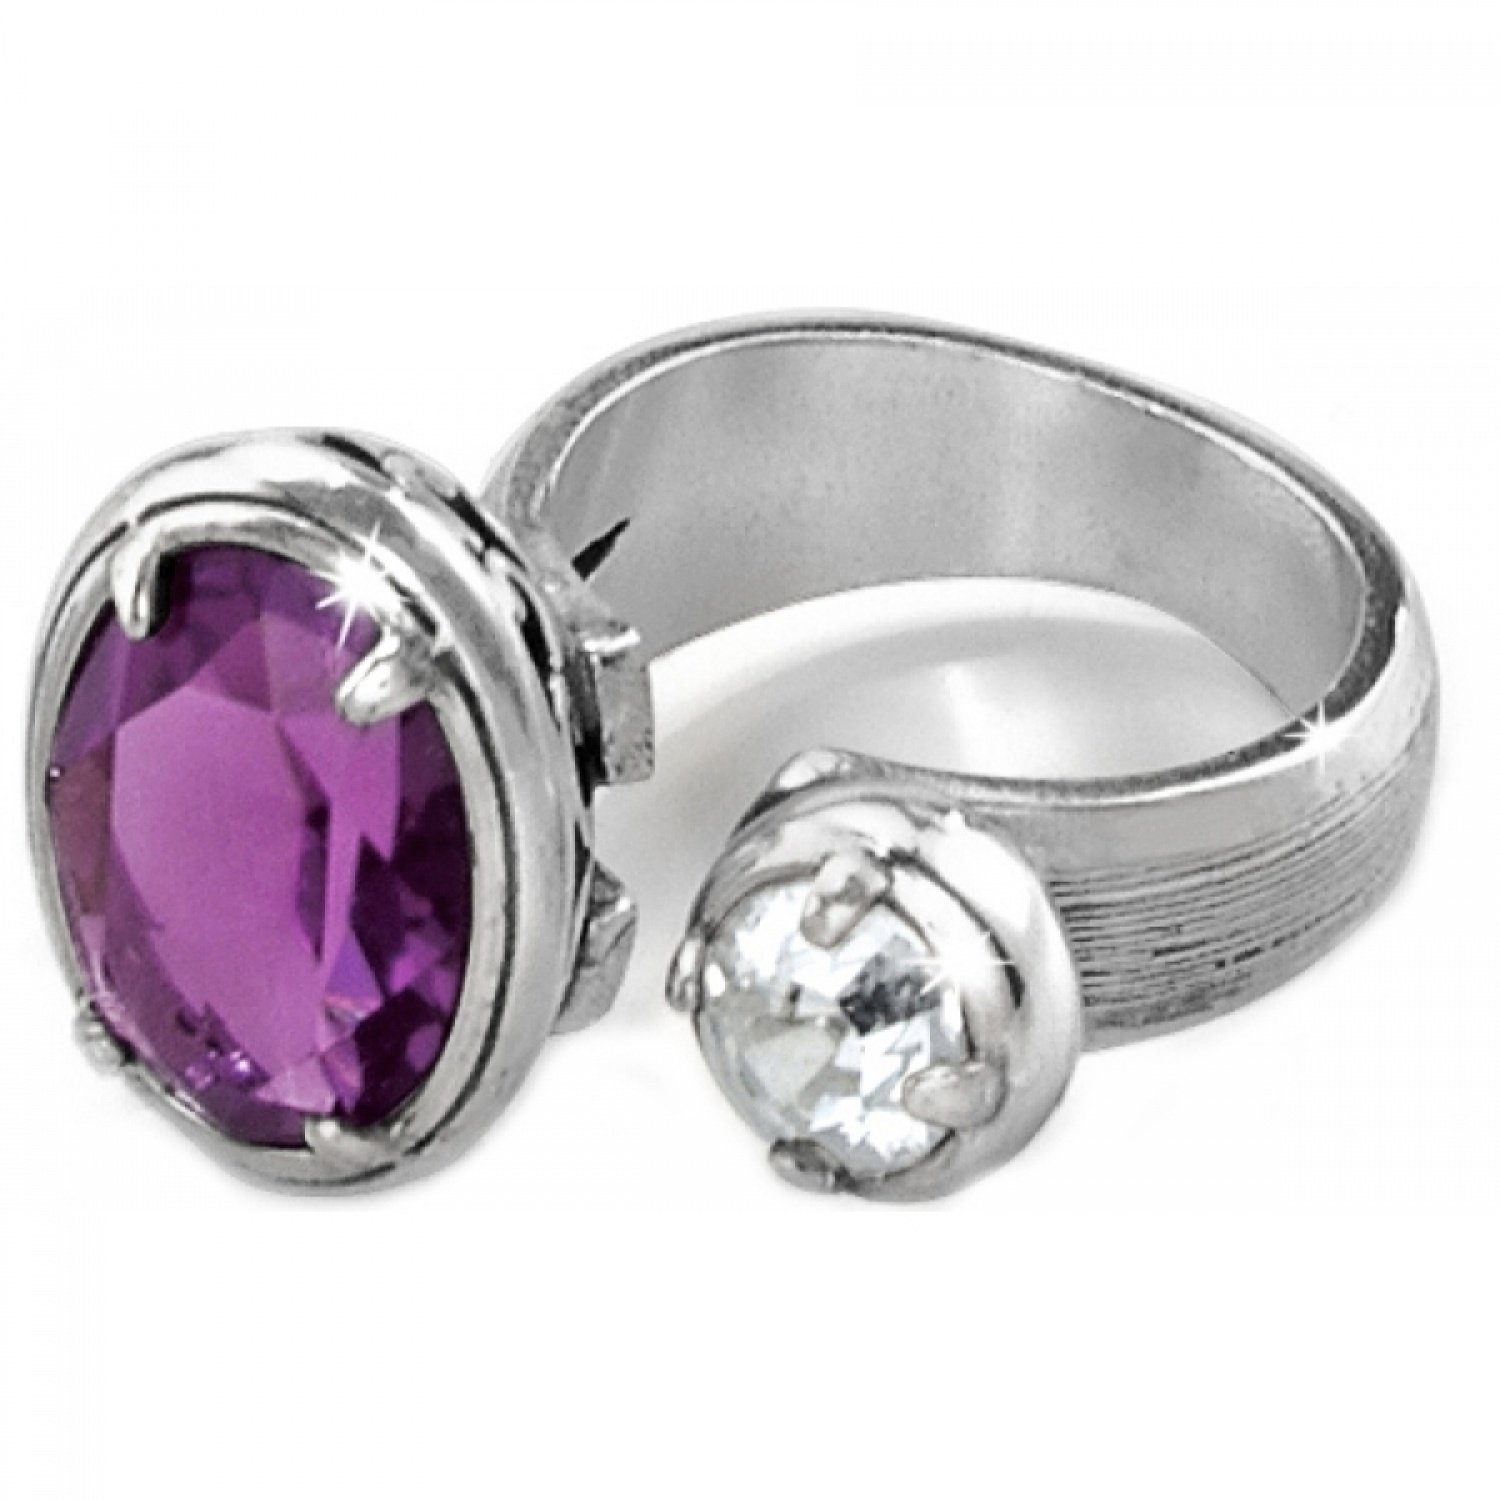 Graceful Graceful Small Ring Rings